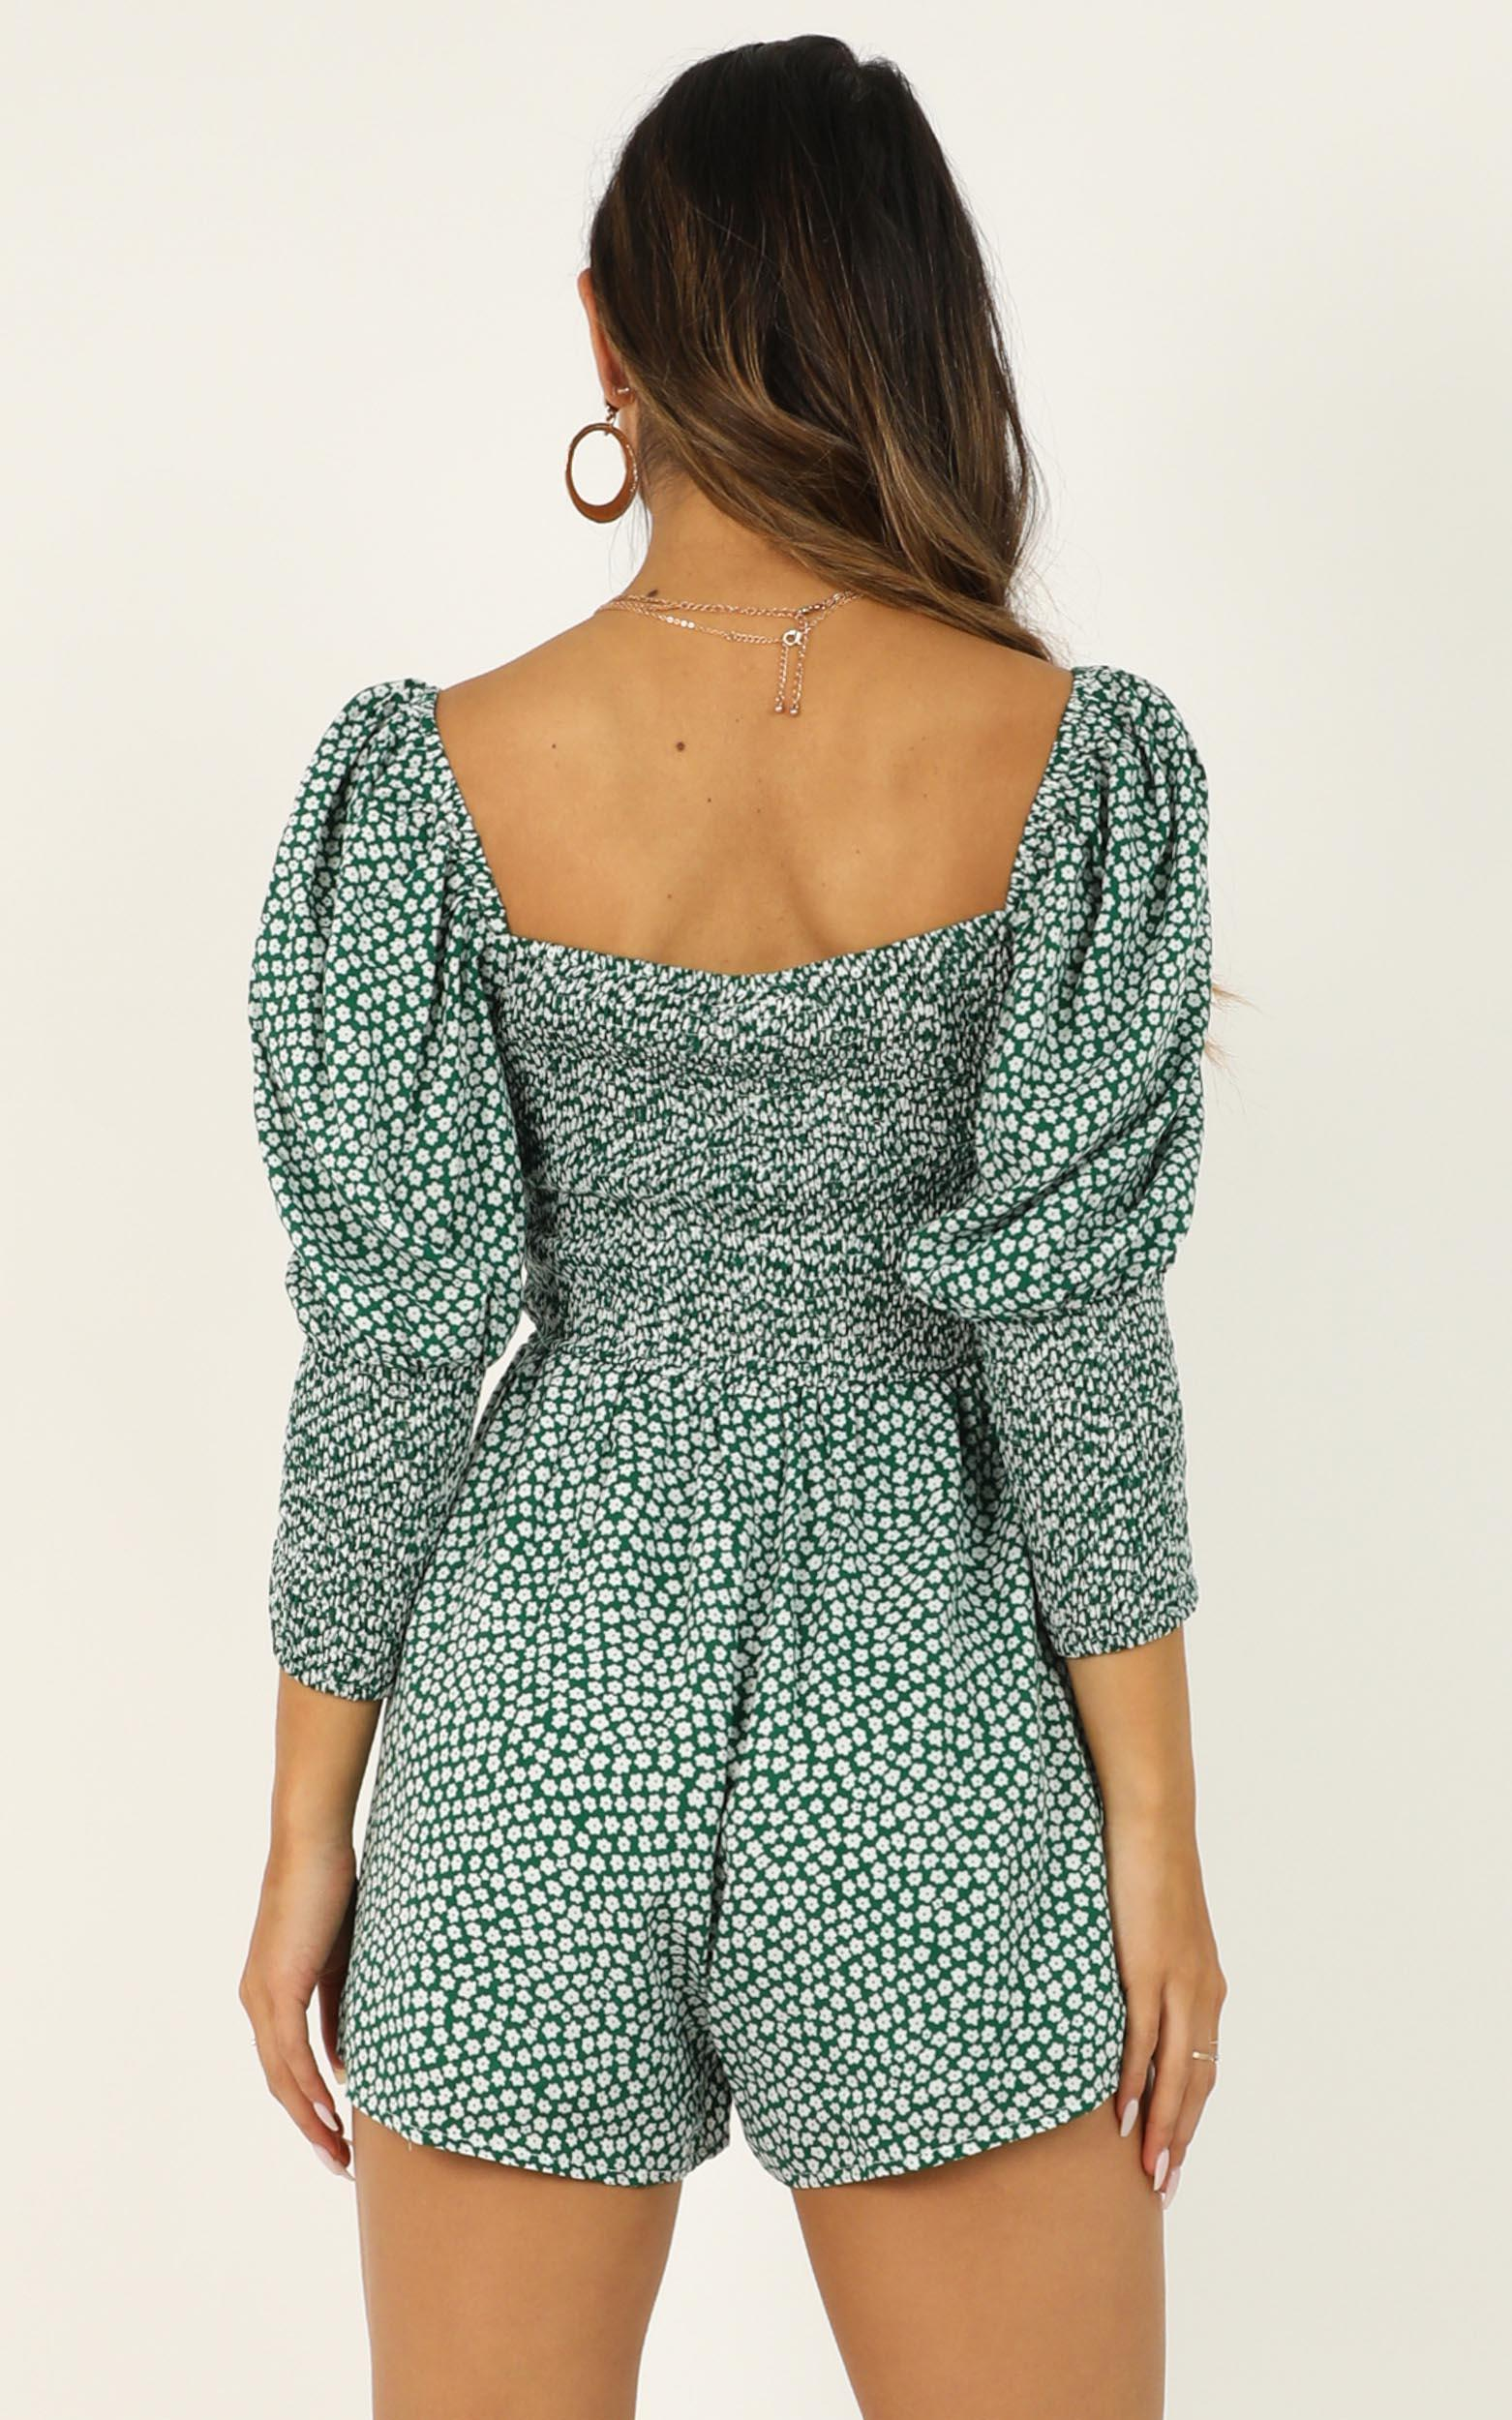 Beauty is Within Us Playsuit in green - 12 (L), Green, hi-res image number null